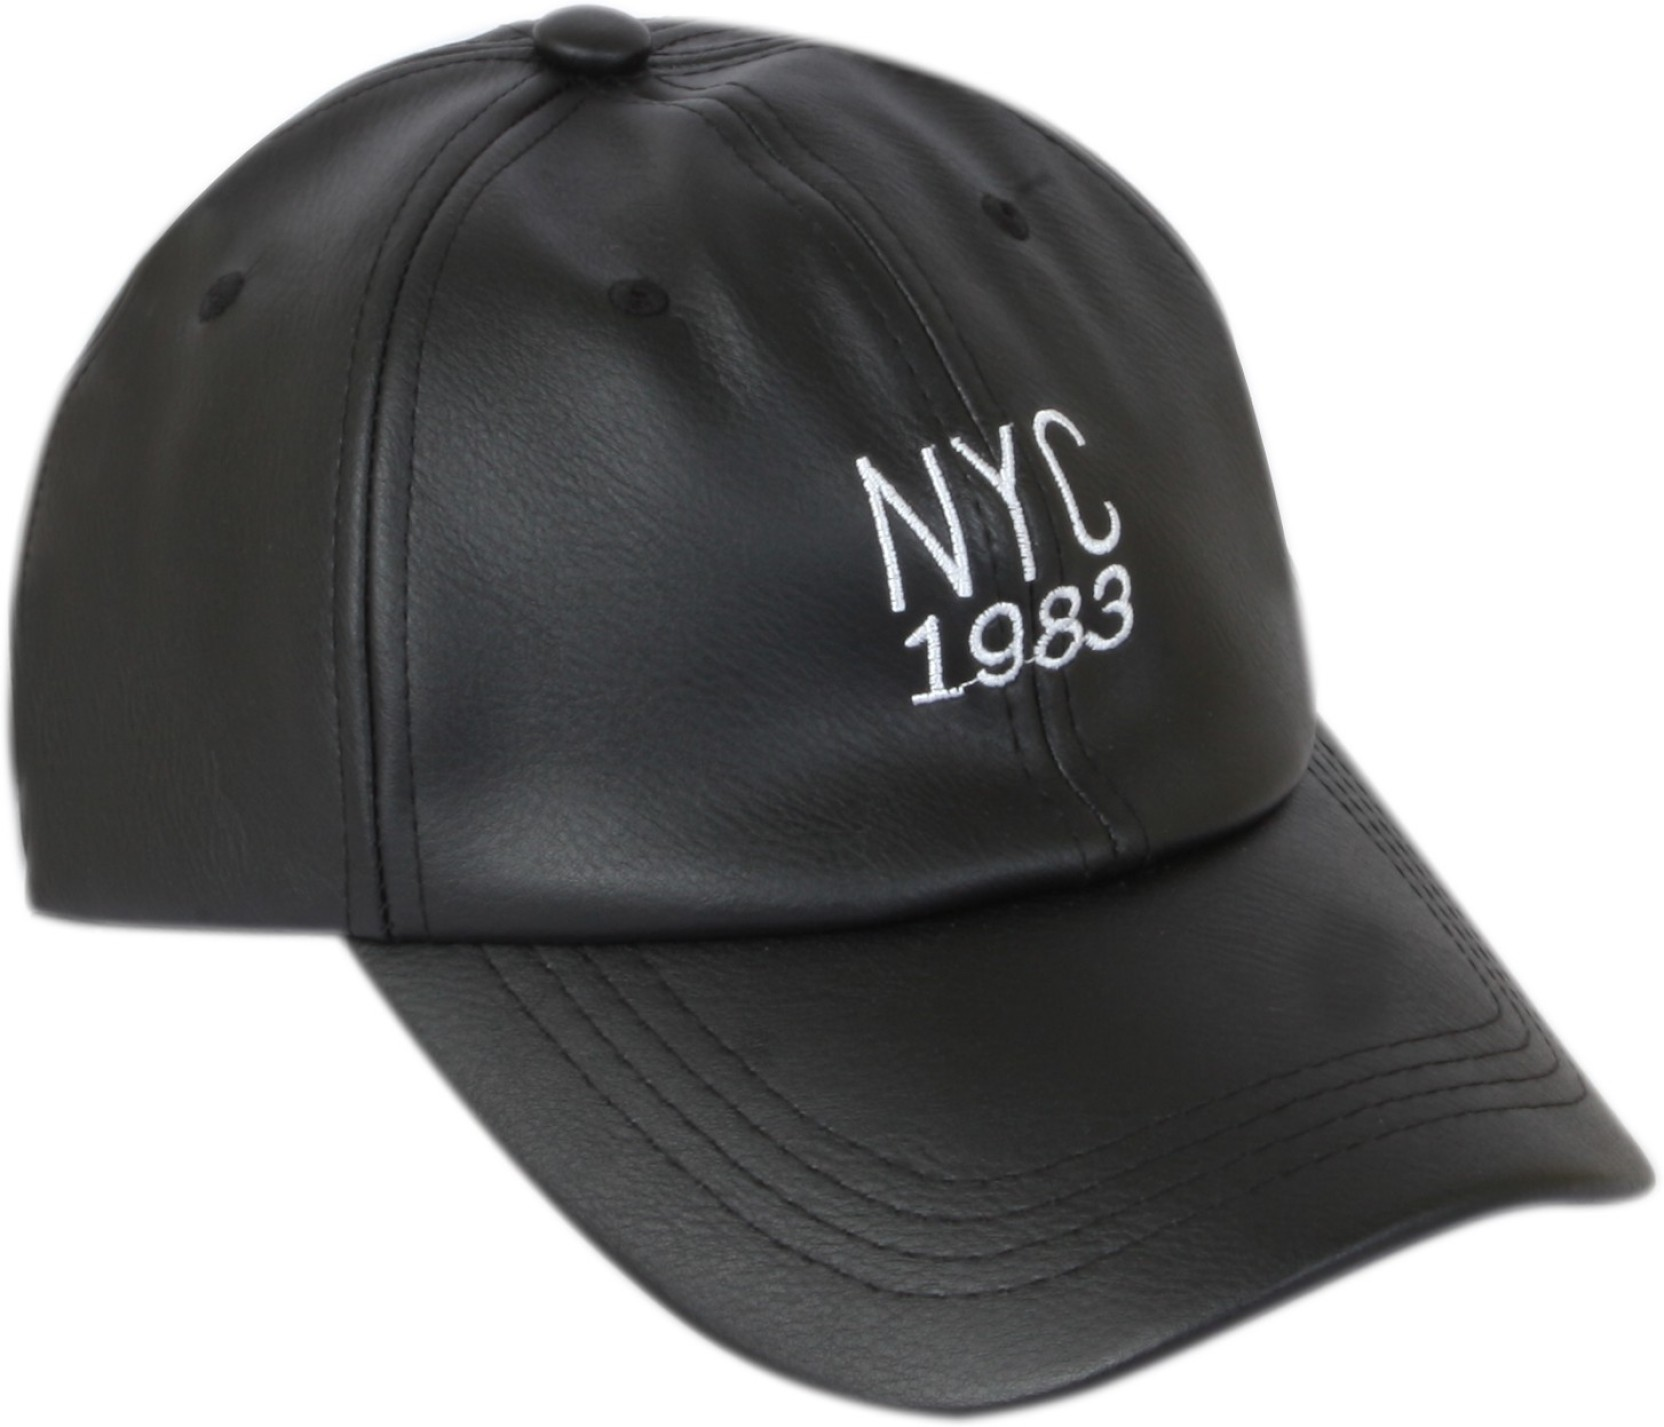 ILU NY Caps Black Leather for men and women 43d87c71e65